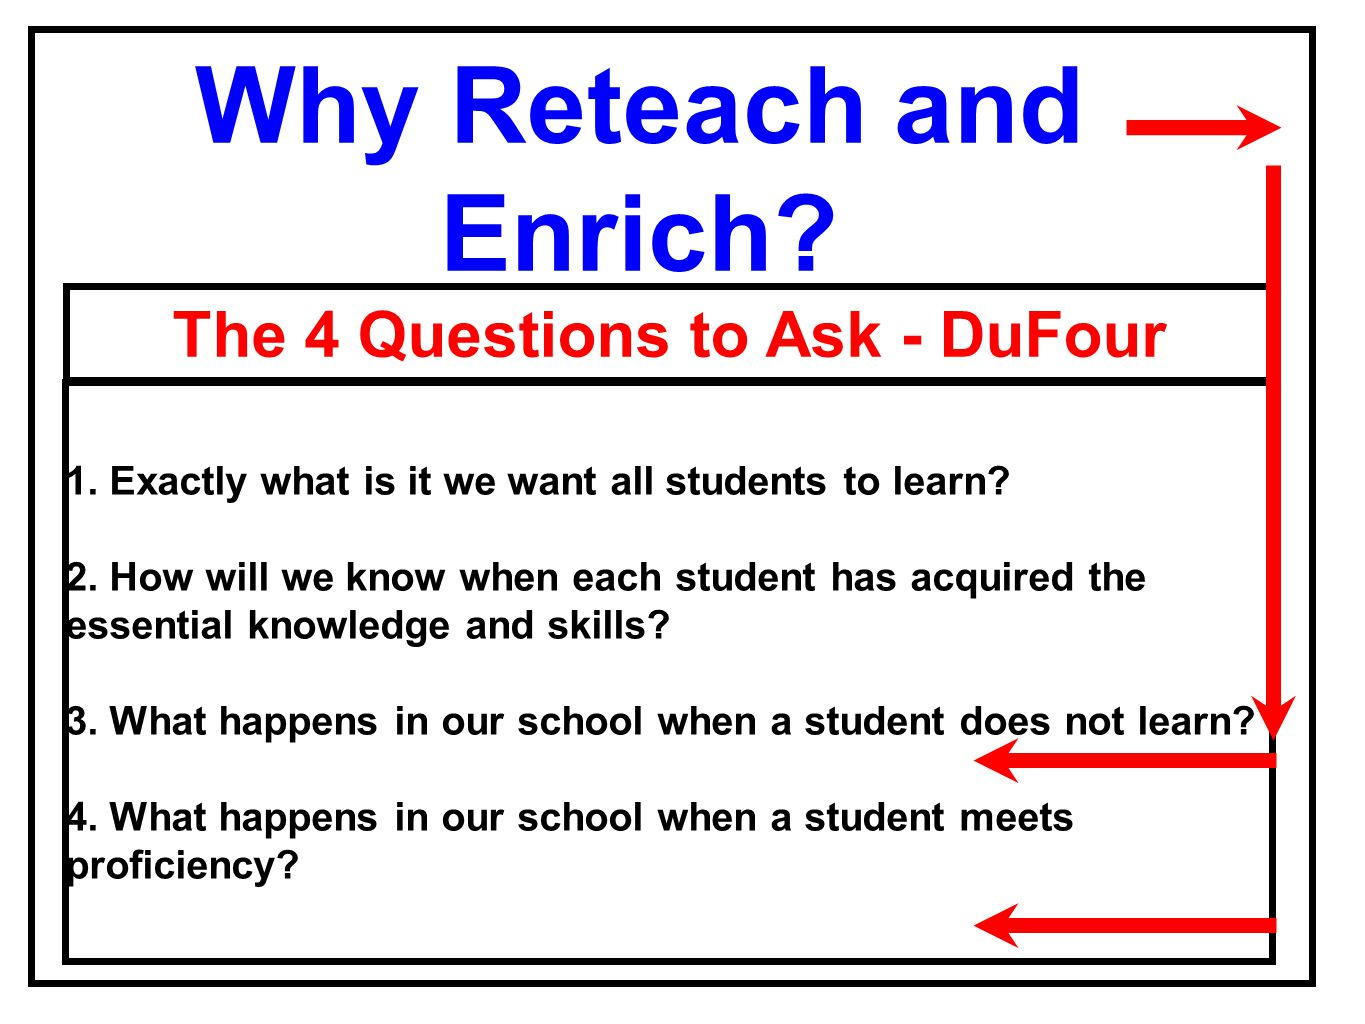 The 4 Questions to Ask - DuFour 1. Exactly what is it we want all students to learn? 2. How will we know when each student has acquired the essential